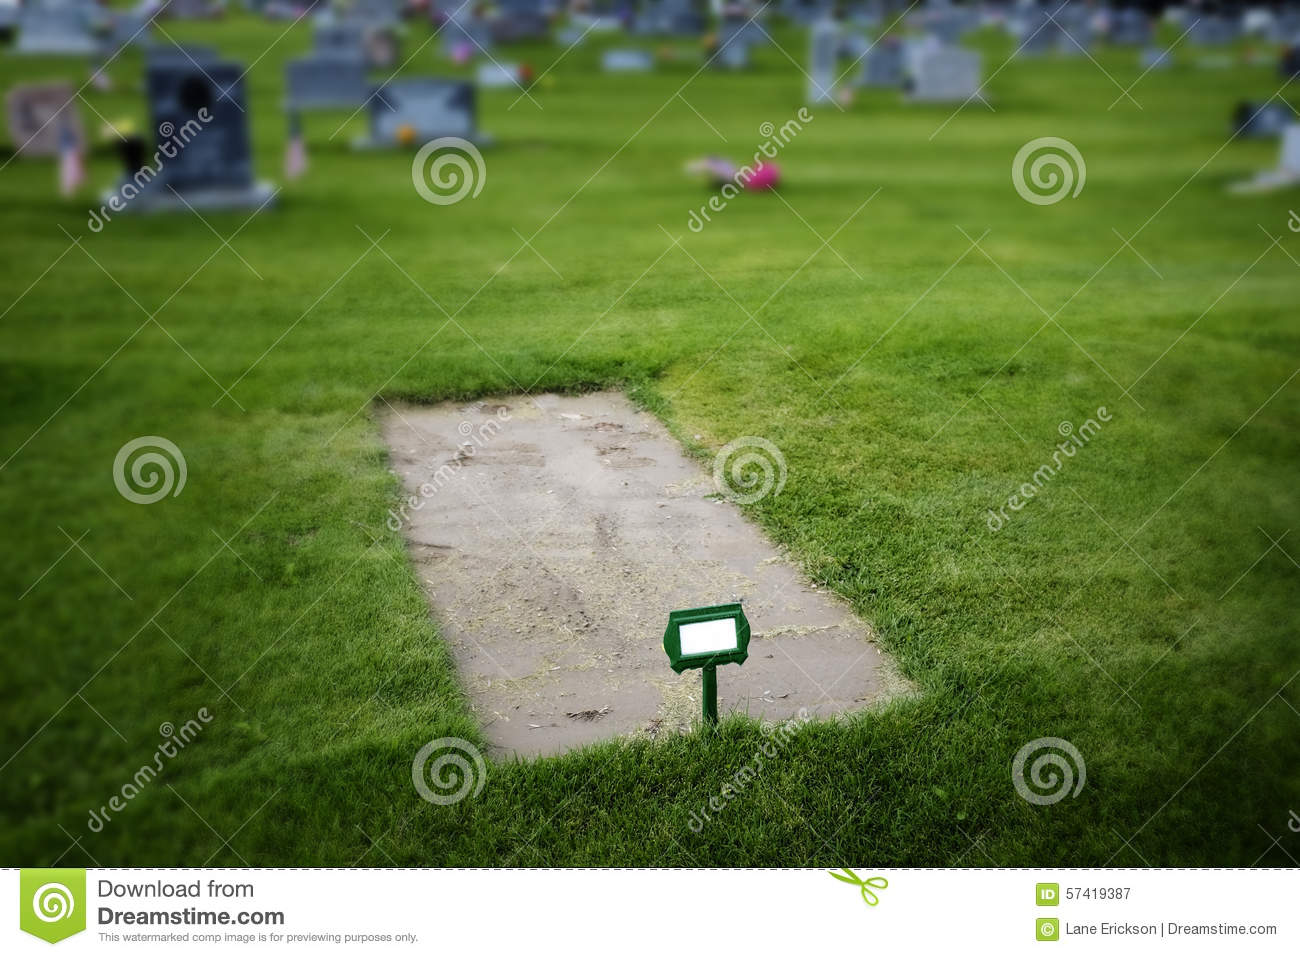 Freshly Dug Grave in Cemetery with Headstones and Green Grass